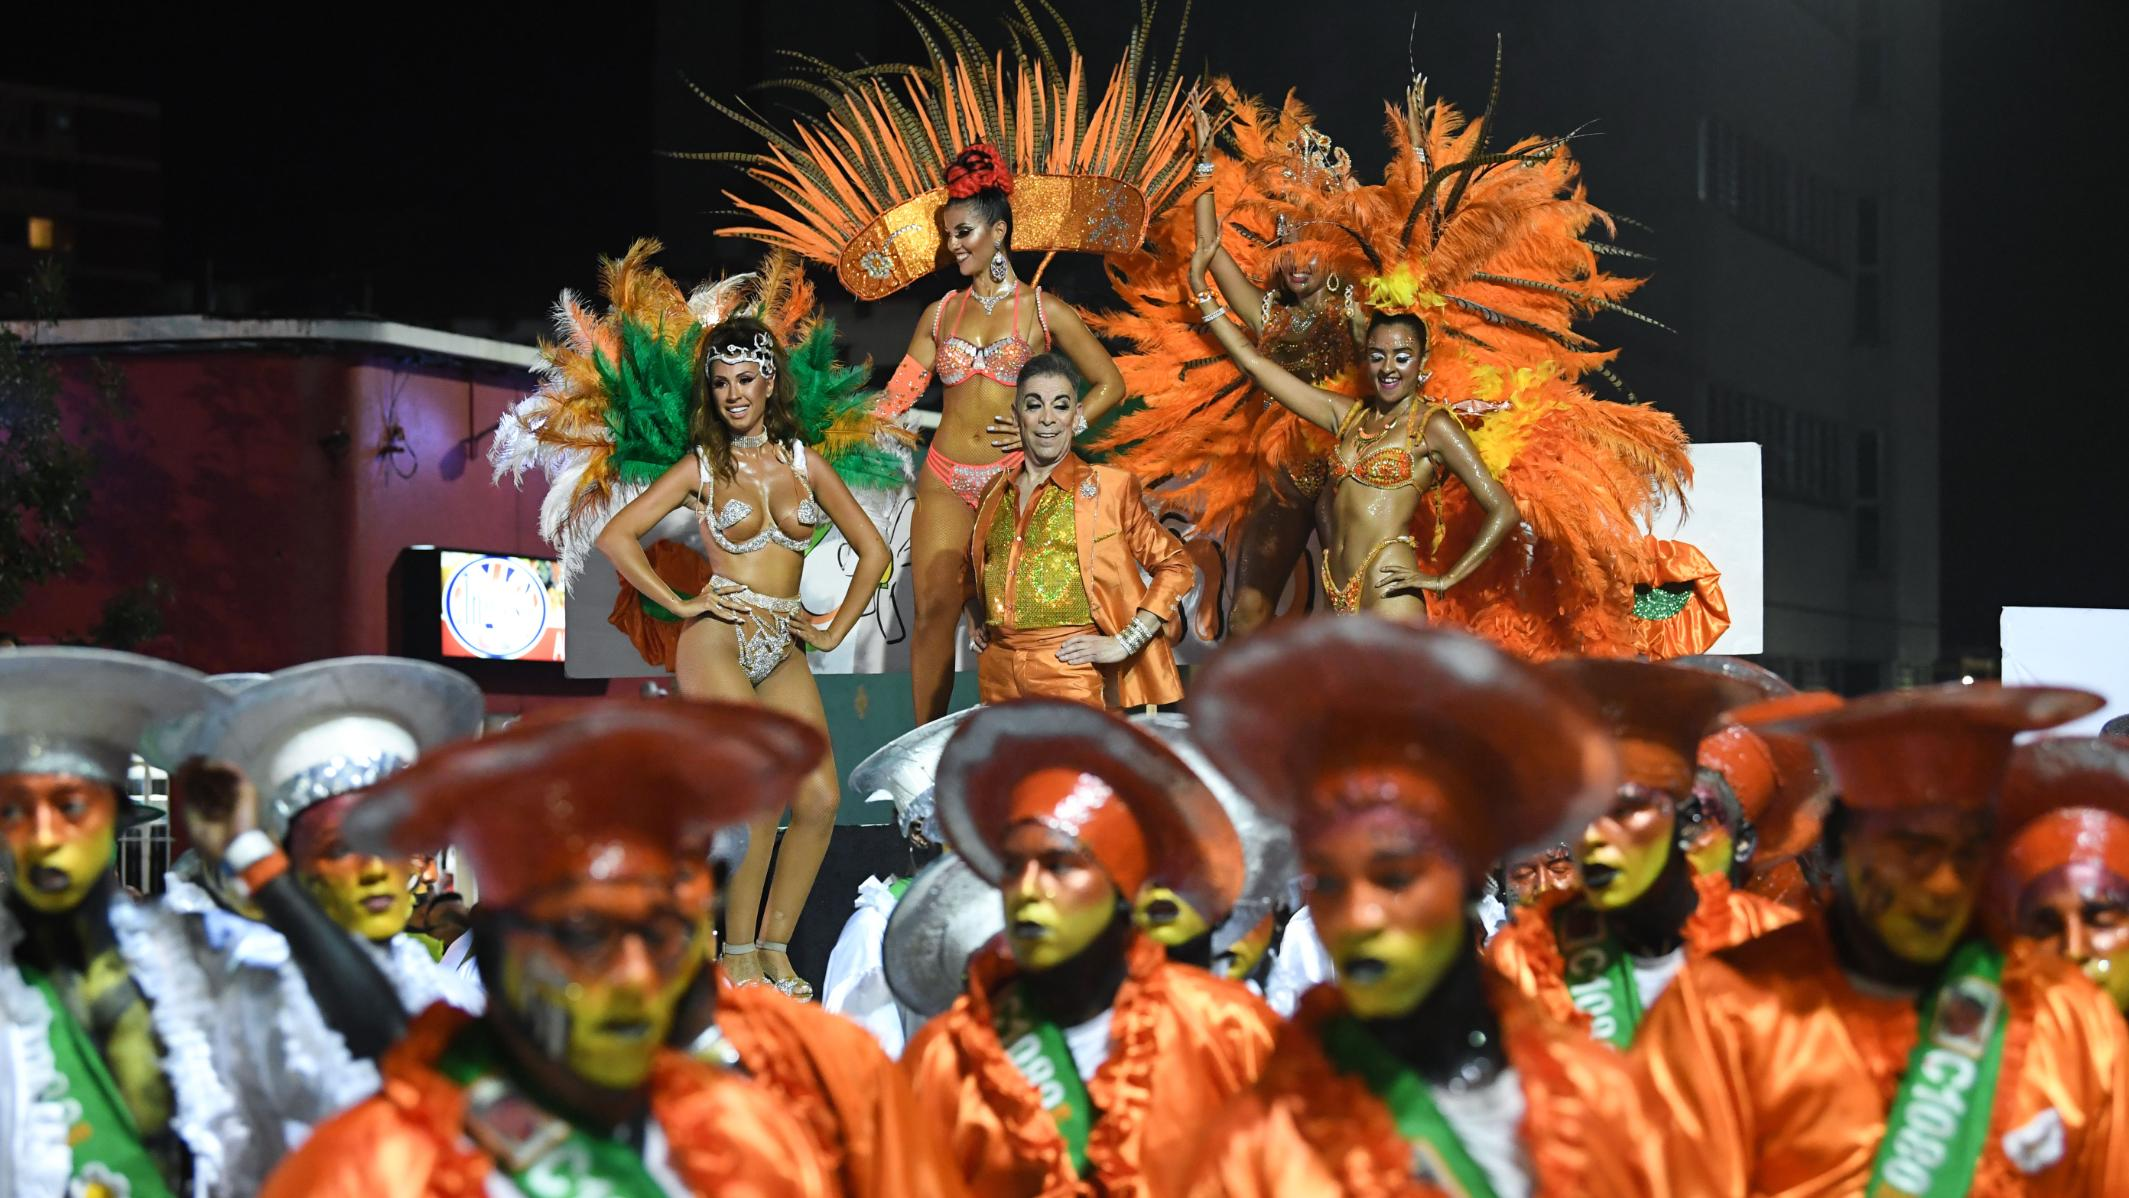 Carnival festivals around the world: Parades and parties in